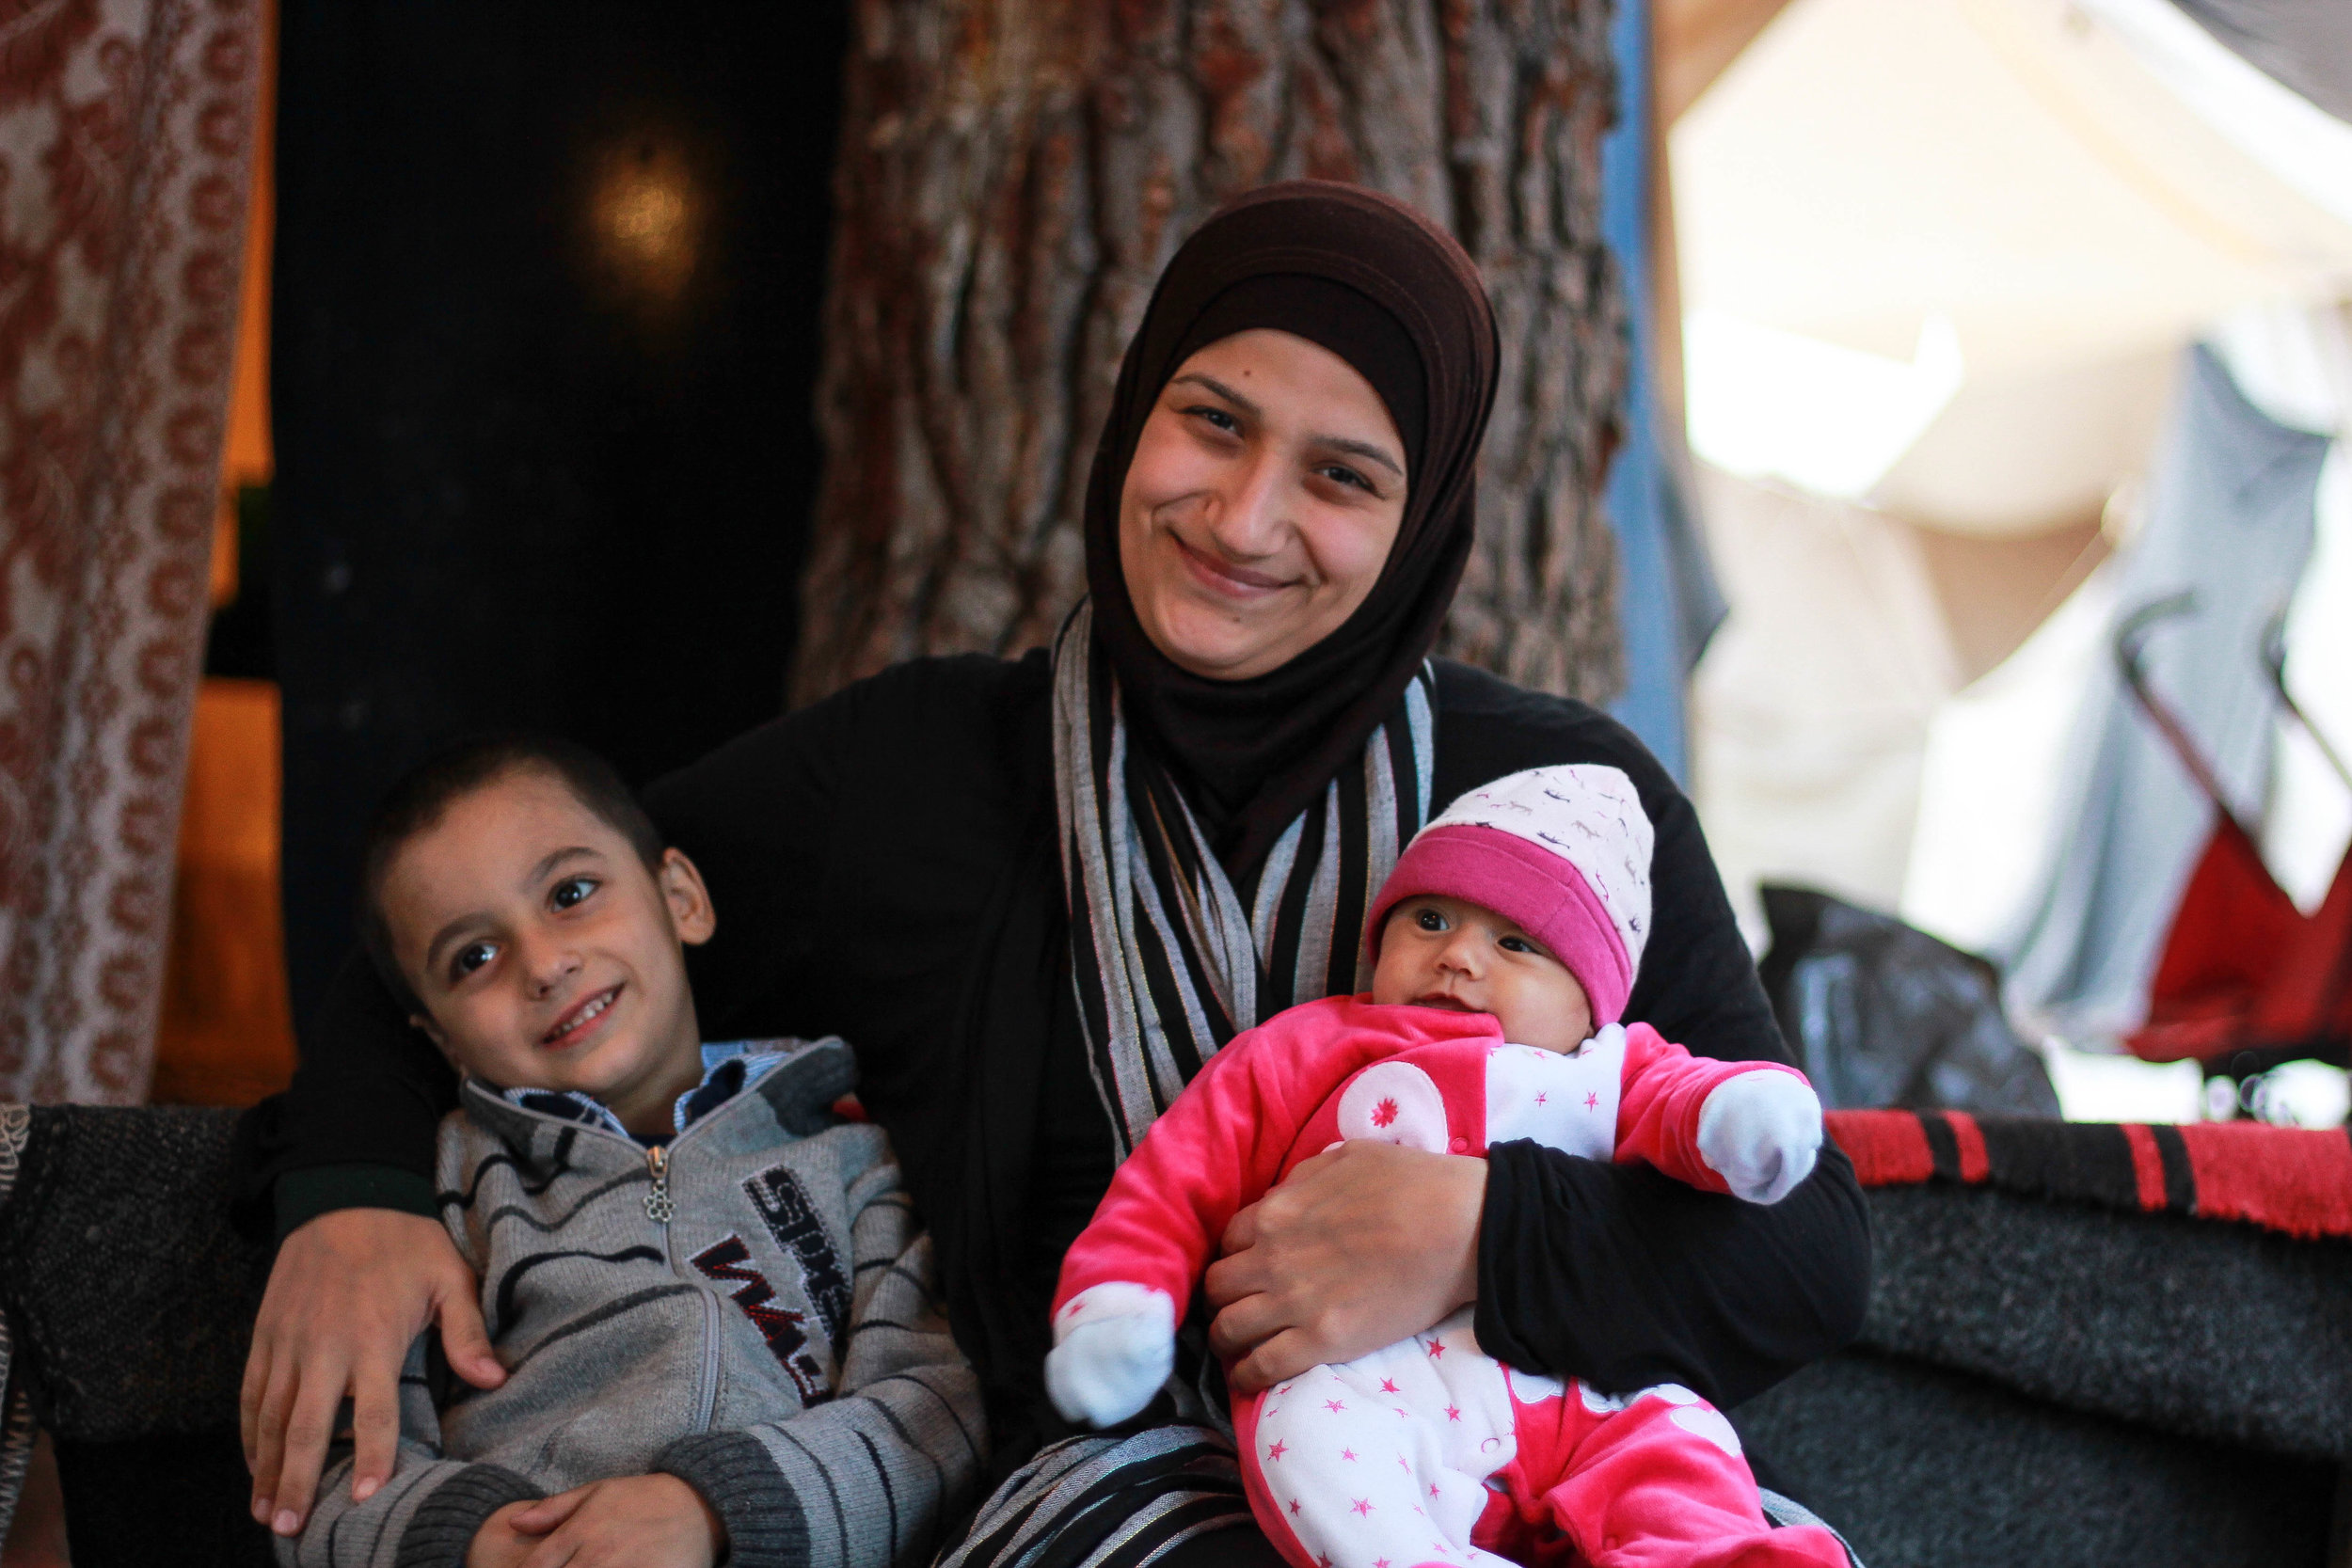 """Hala Baroud, 28 years old, from Latakia, Syria / Photo: Shayanne Gal     """"When we arrived at the refugee camp, I cried and cried. 'How can we live here, in tents, in the middle of a forest, when it is so cold and muddy?' I told my husband. It took me two months to get used to the idea that this was our life now, that we are truly refugees.""""     """"One of the most difficult things for me here is the feeling that I have lost my family, my husband, and I have lost my son here. We used to have it all, but now we depend on the volunteers for food, for clothes, for everything. We have to ask for the smallest things, like some washing powder - it is humiliating. My son asks me for someth  ing but I cannot buy it for him, so he asks the volunteers instead. He has become a beggar, like a street child, and I cannot stand to see that. I feel like I have lost him to this place."""""""